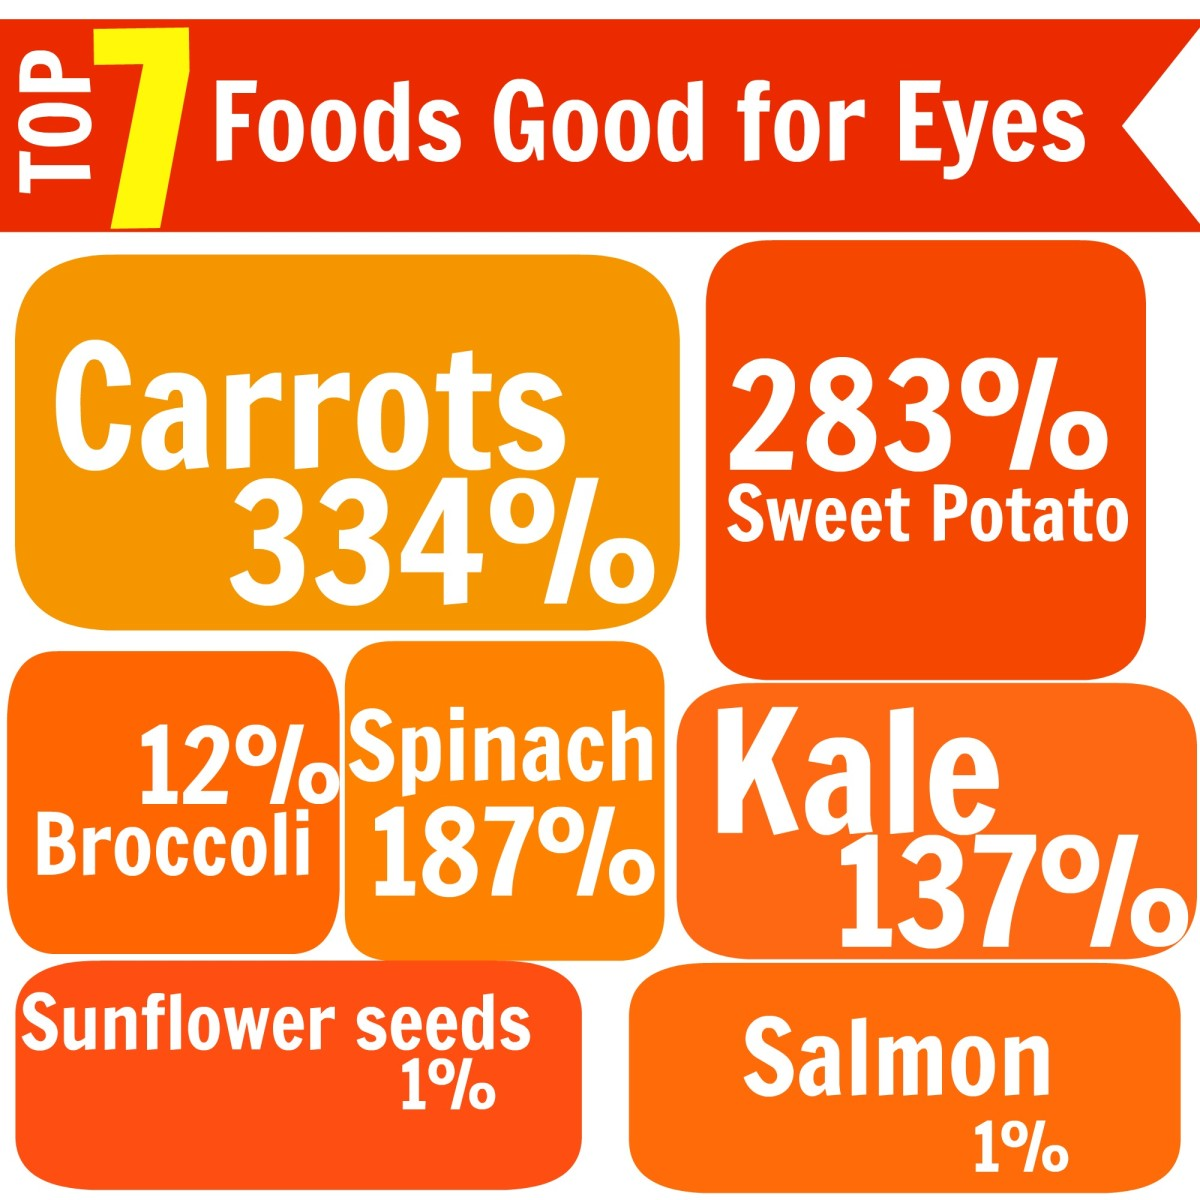 Best 7 Foods Good for the Eyes